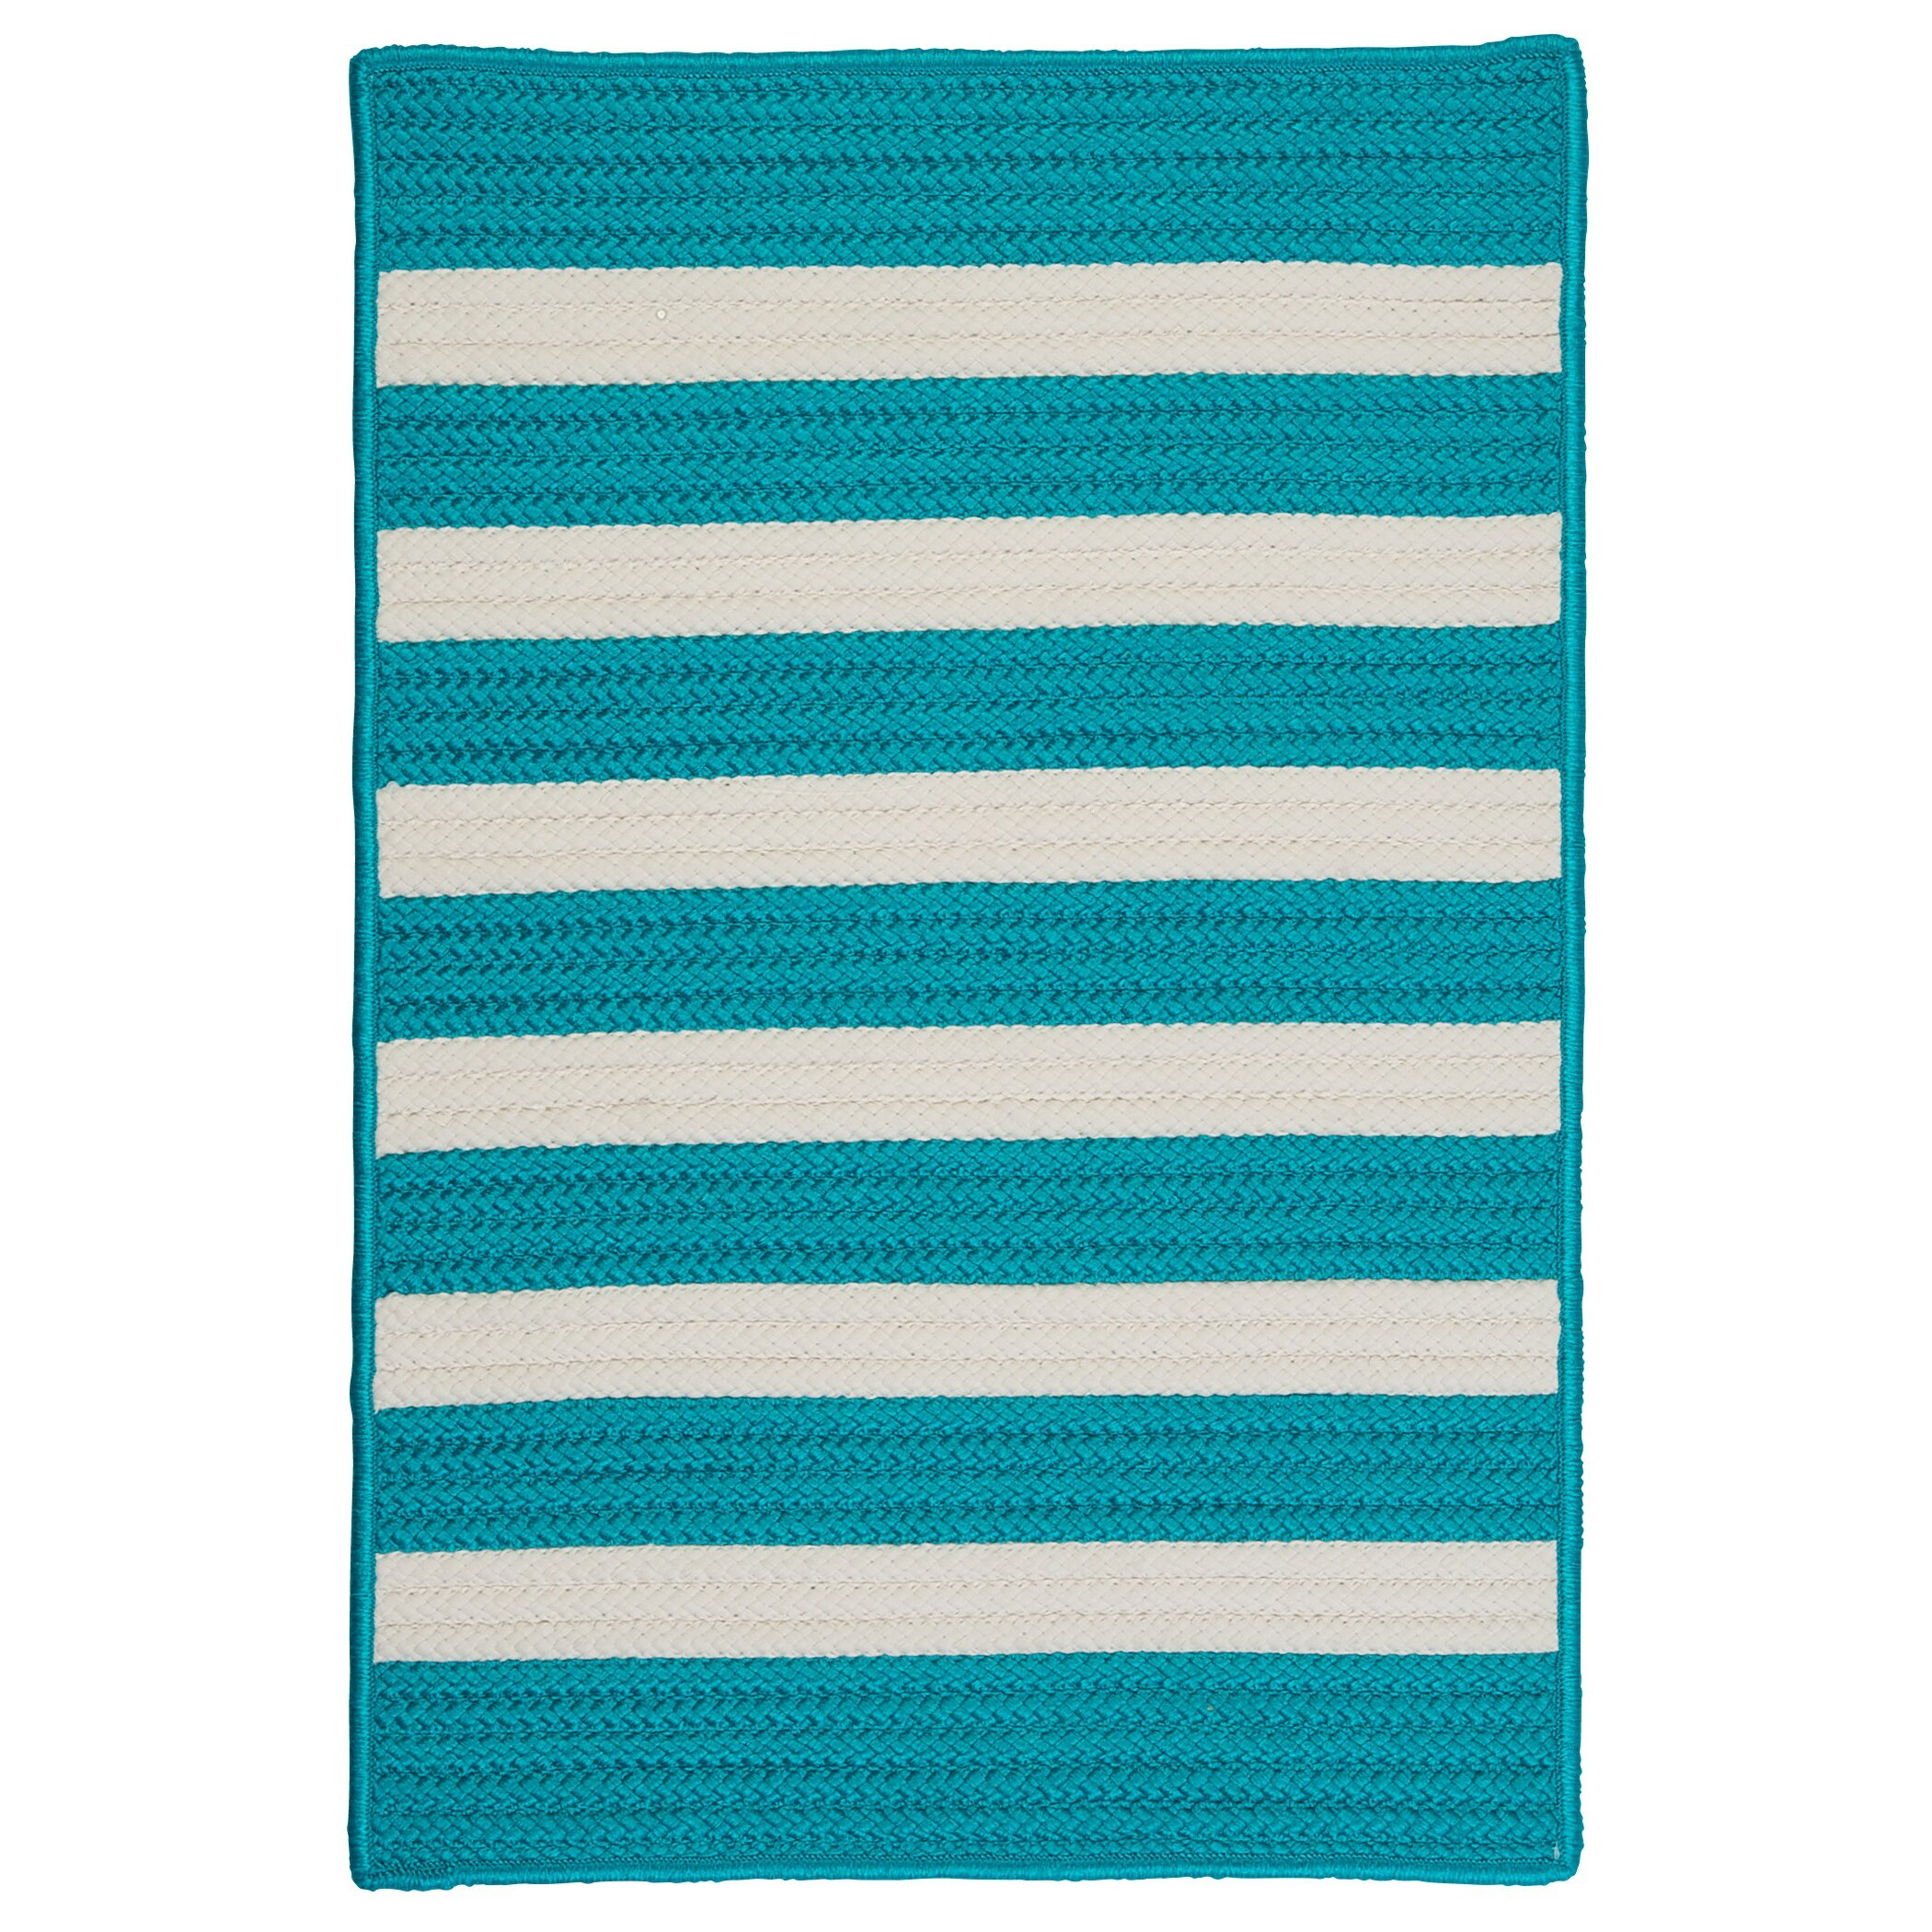 Turquoise Outdoor Rug Fab Rugs World Venice Gray Turquoise